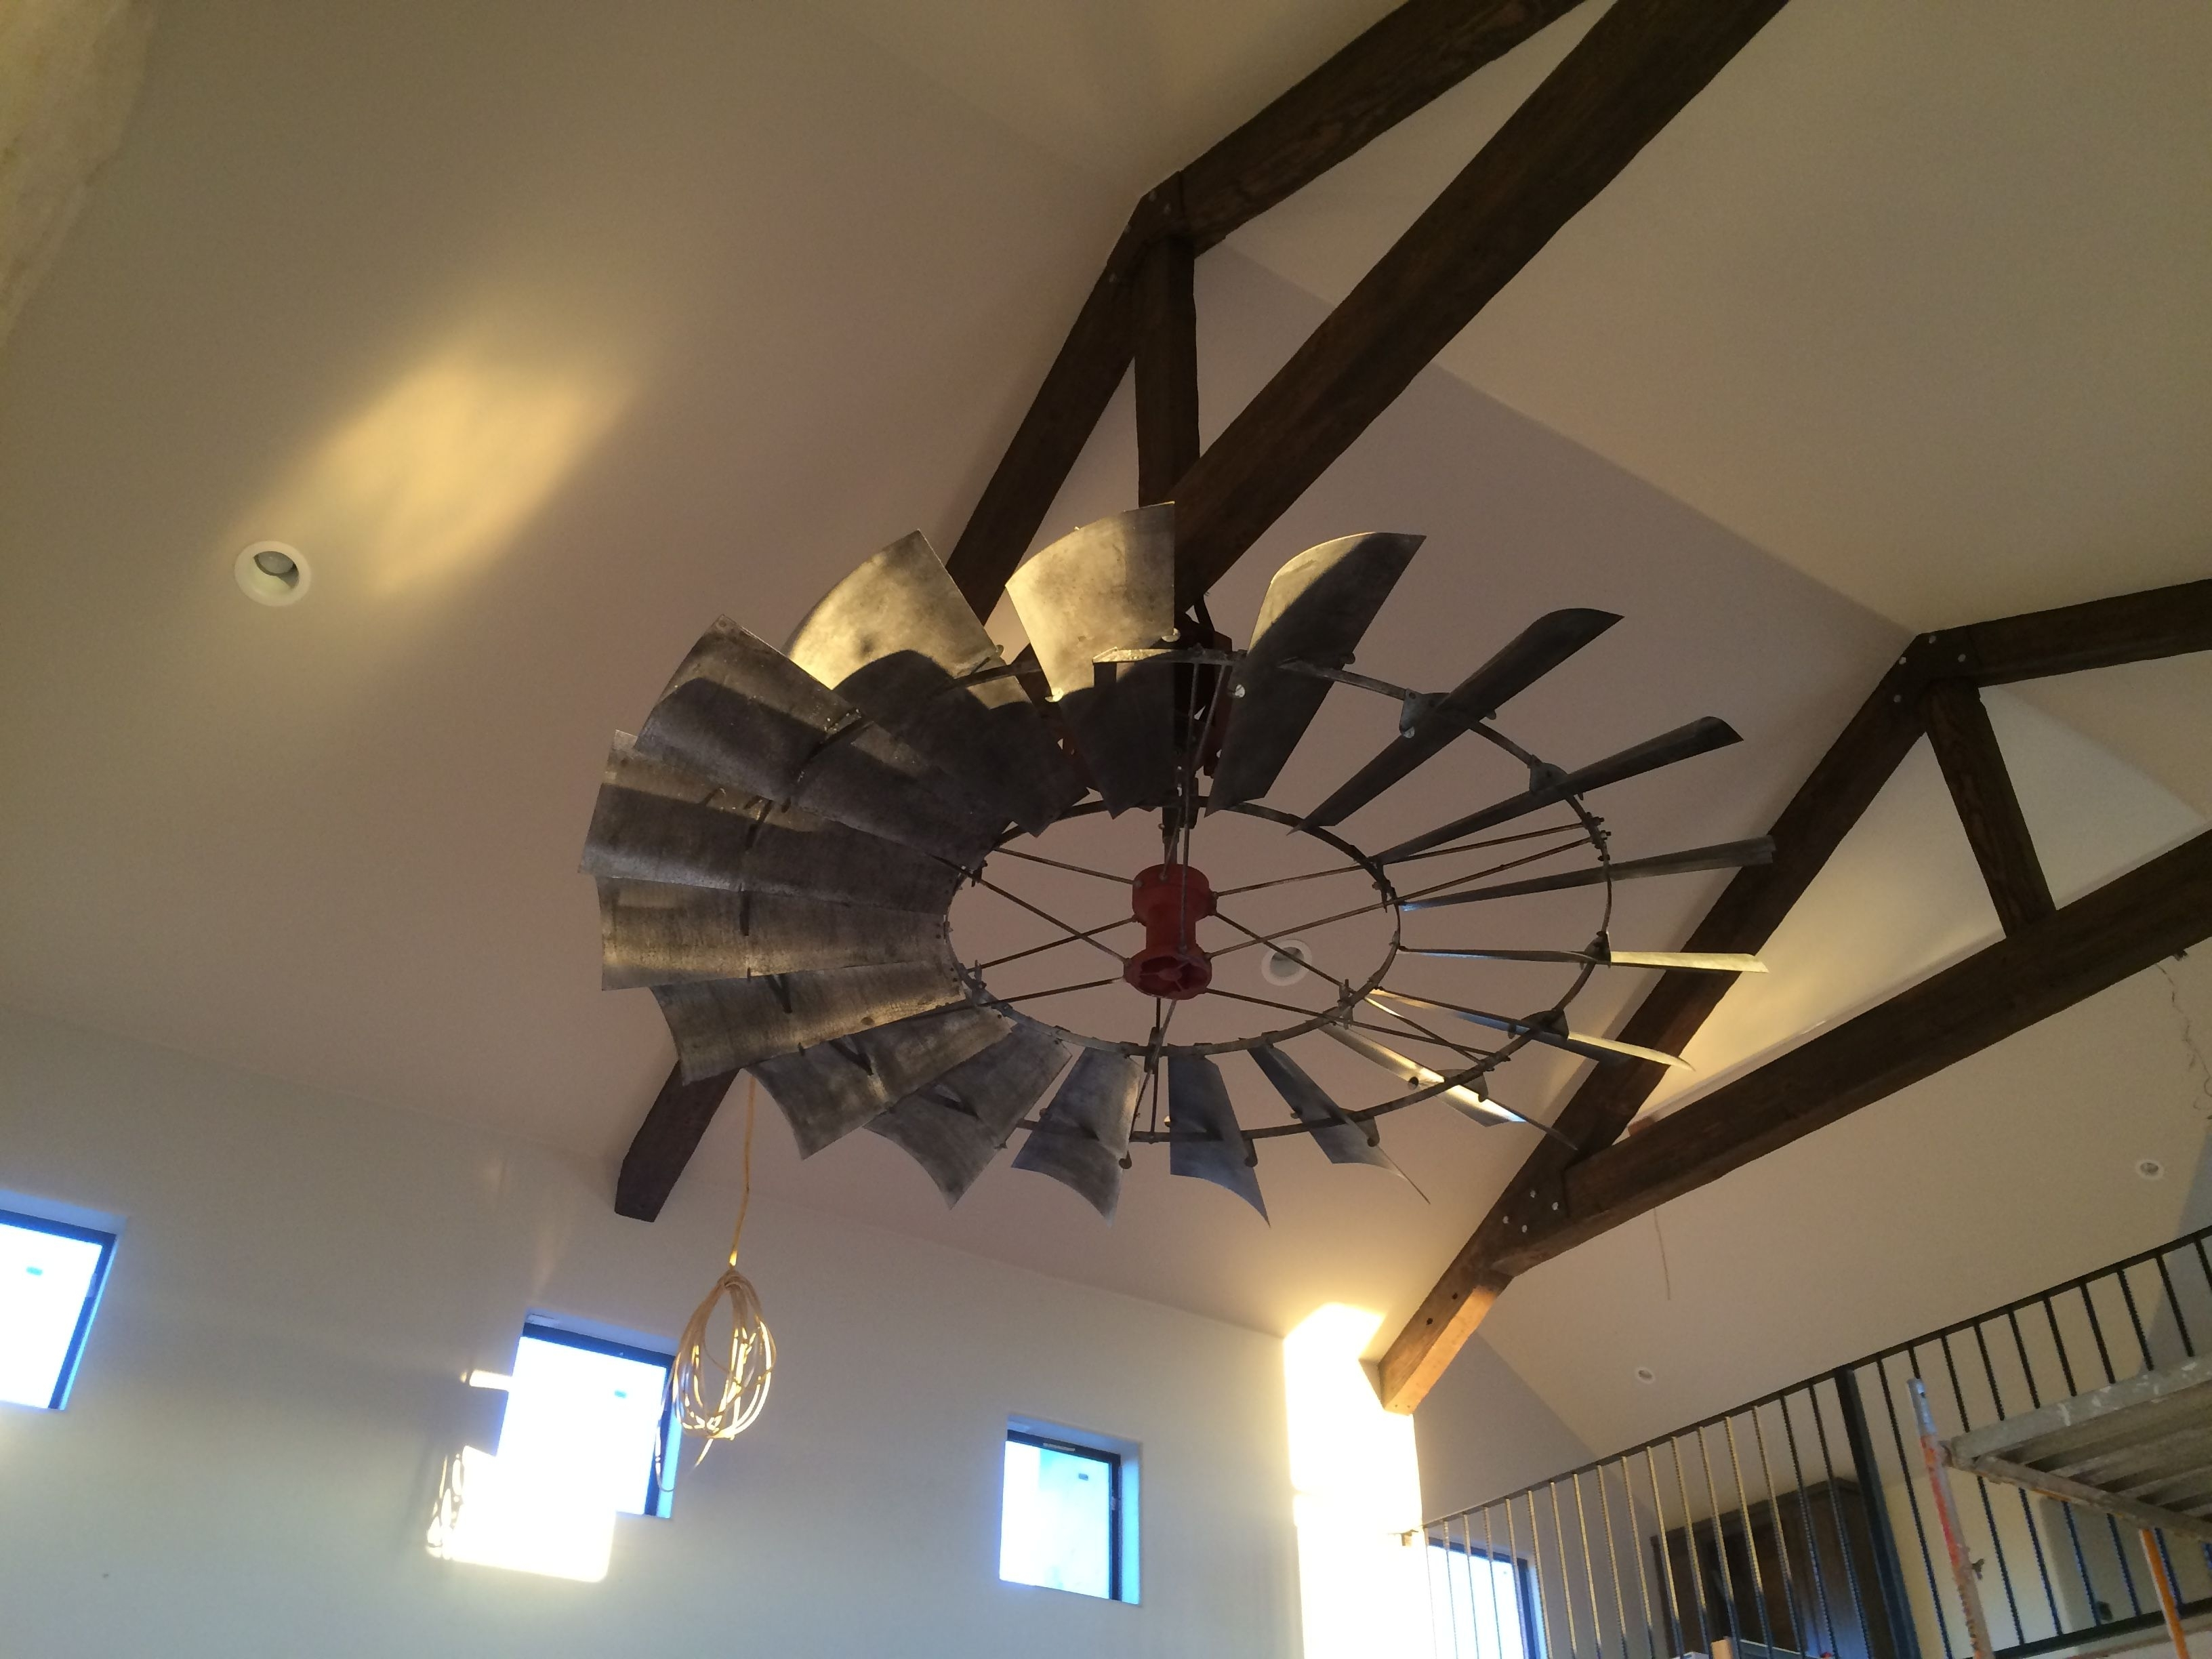 Lighting Pertaining To Widely Used Outdoor Windmill Ceiling Fans With Light (View 9 of 20)